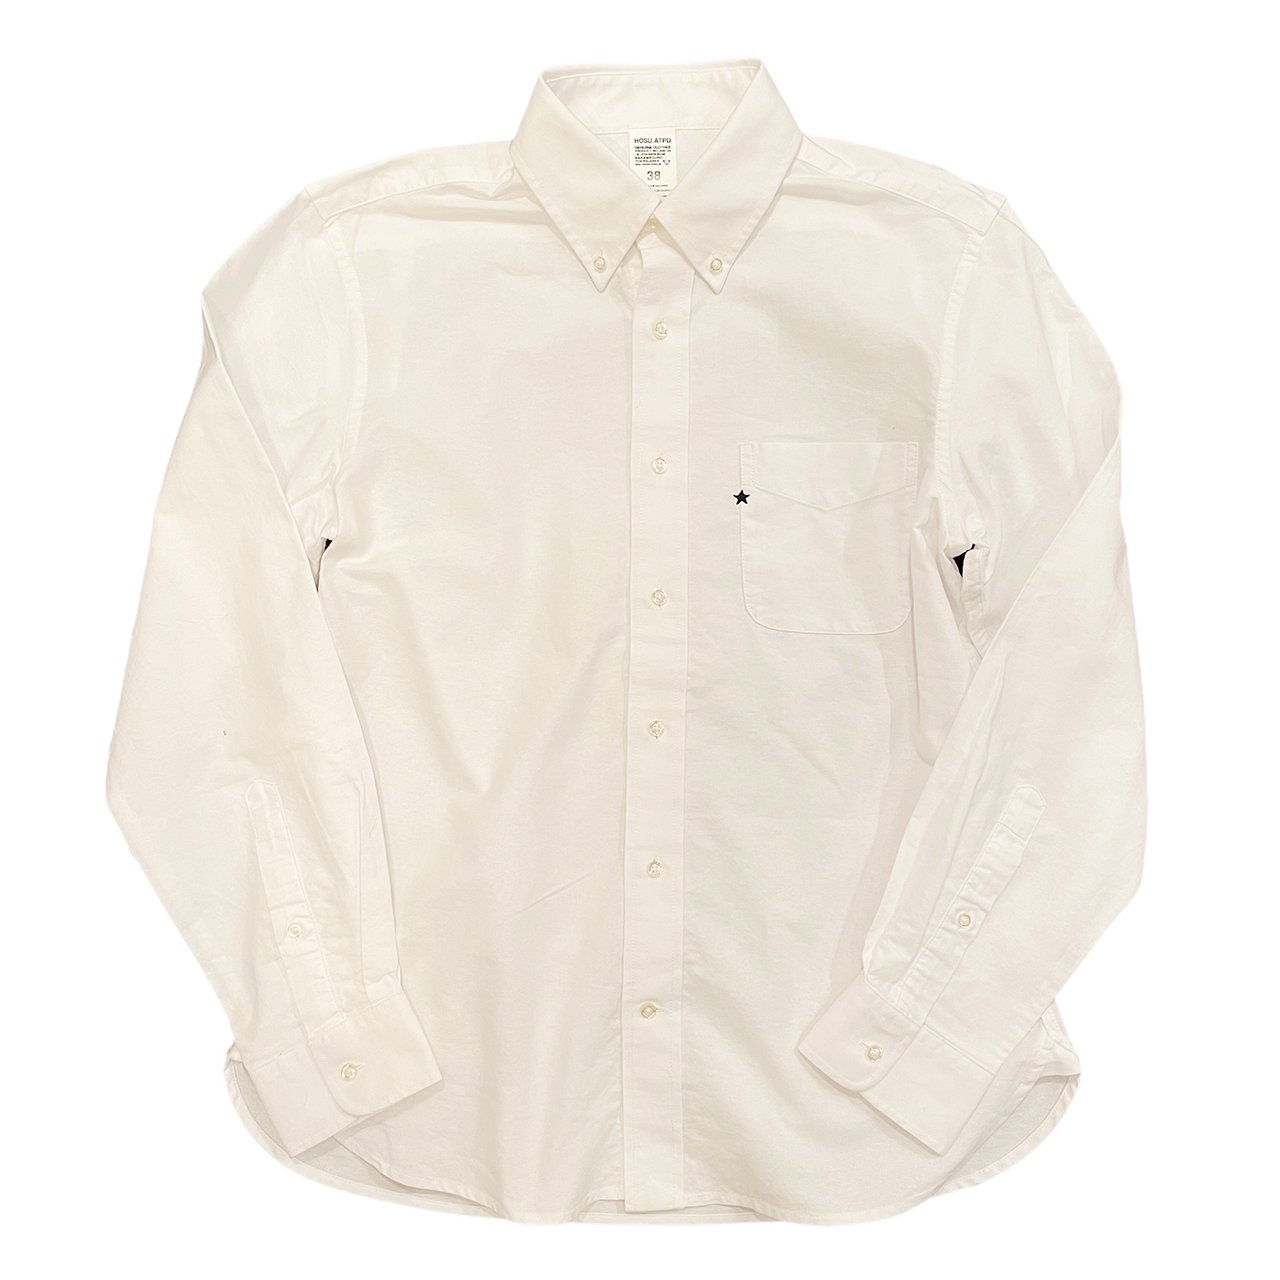 OXFORD SHIRT ONE STAR EMBROIDERY /WHITE,BLUE HOSU